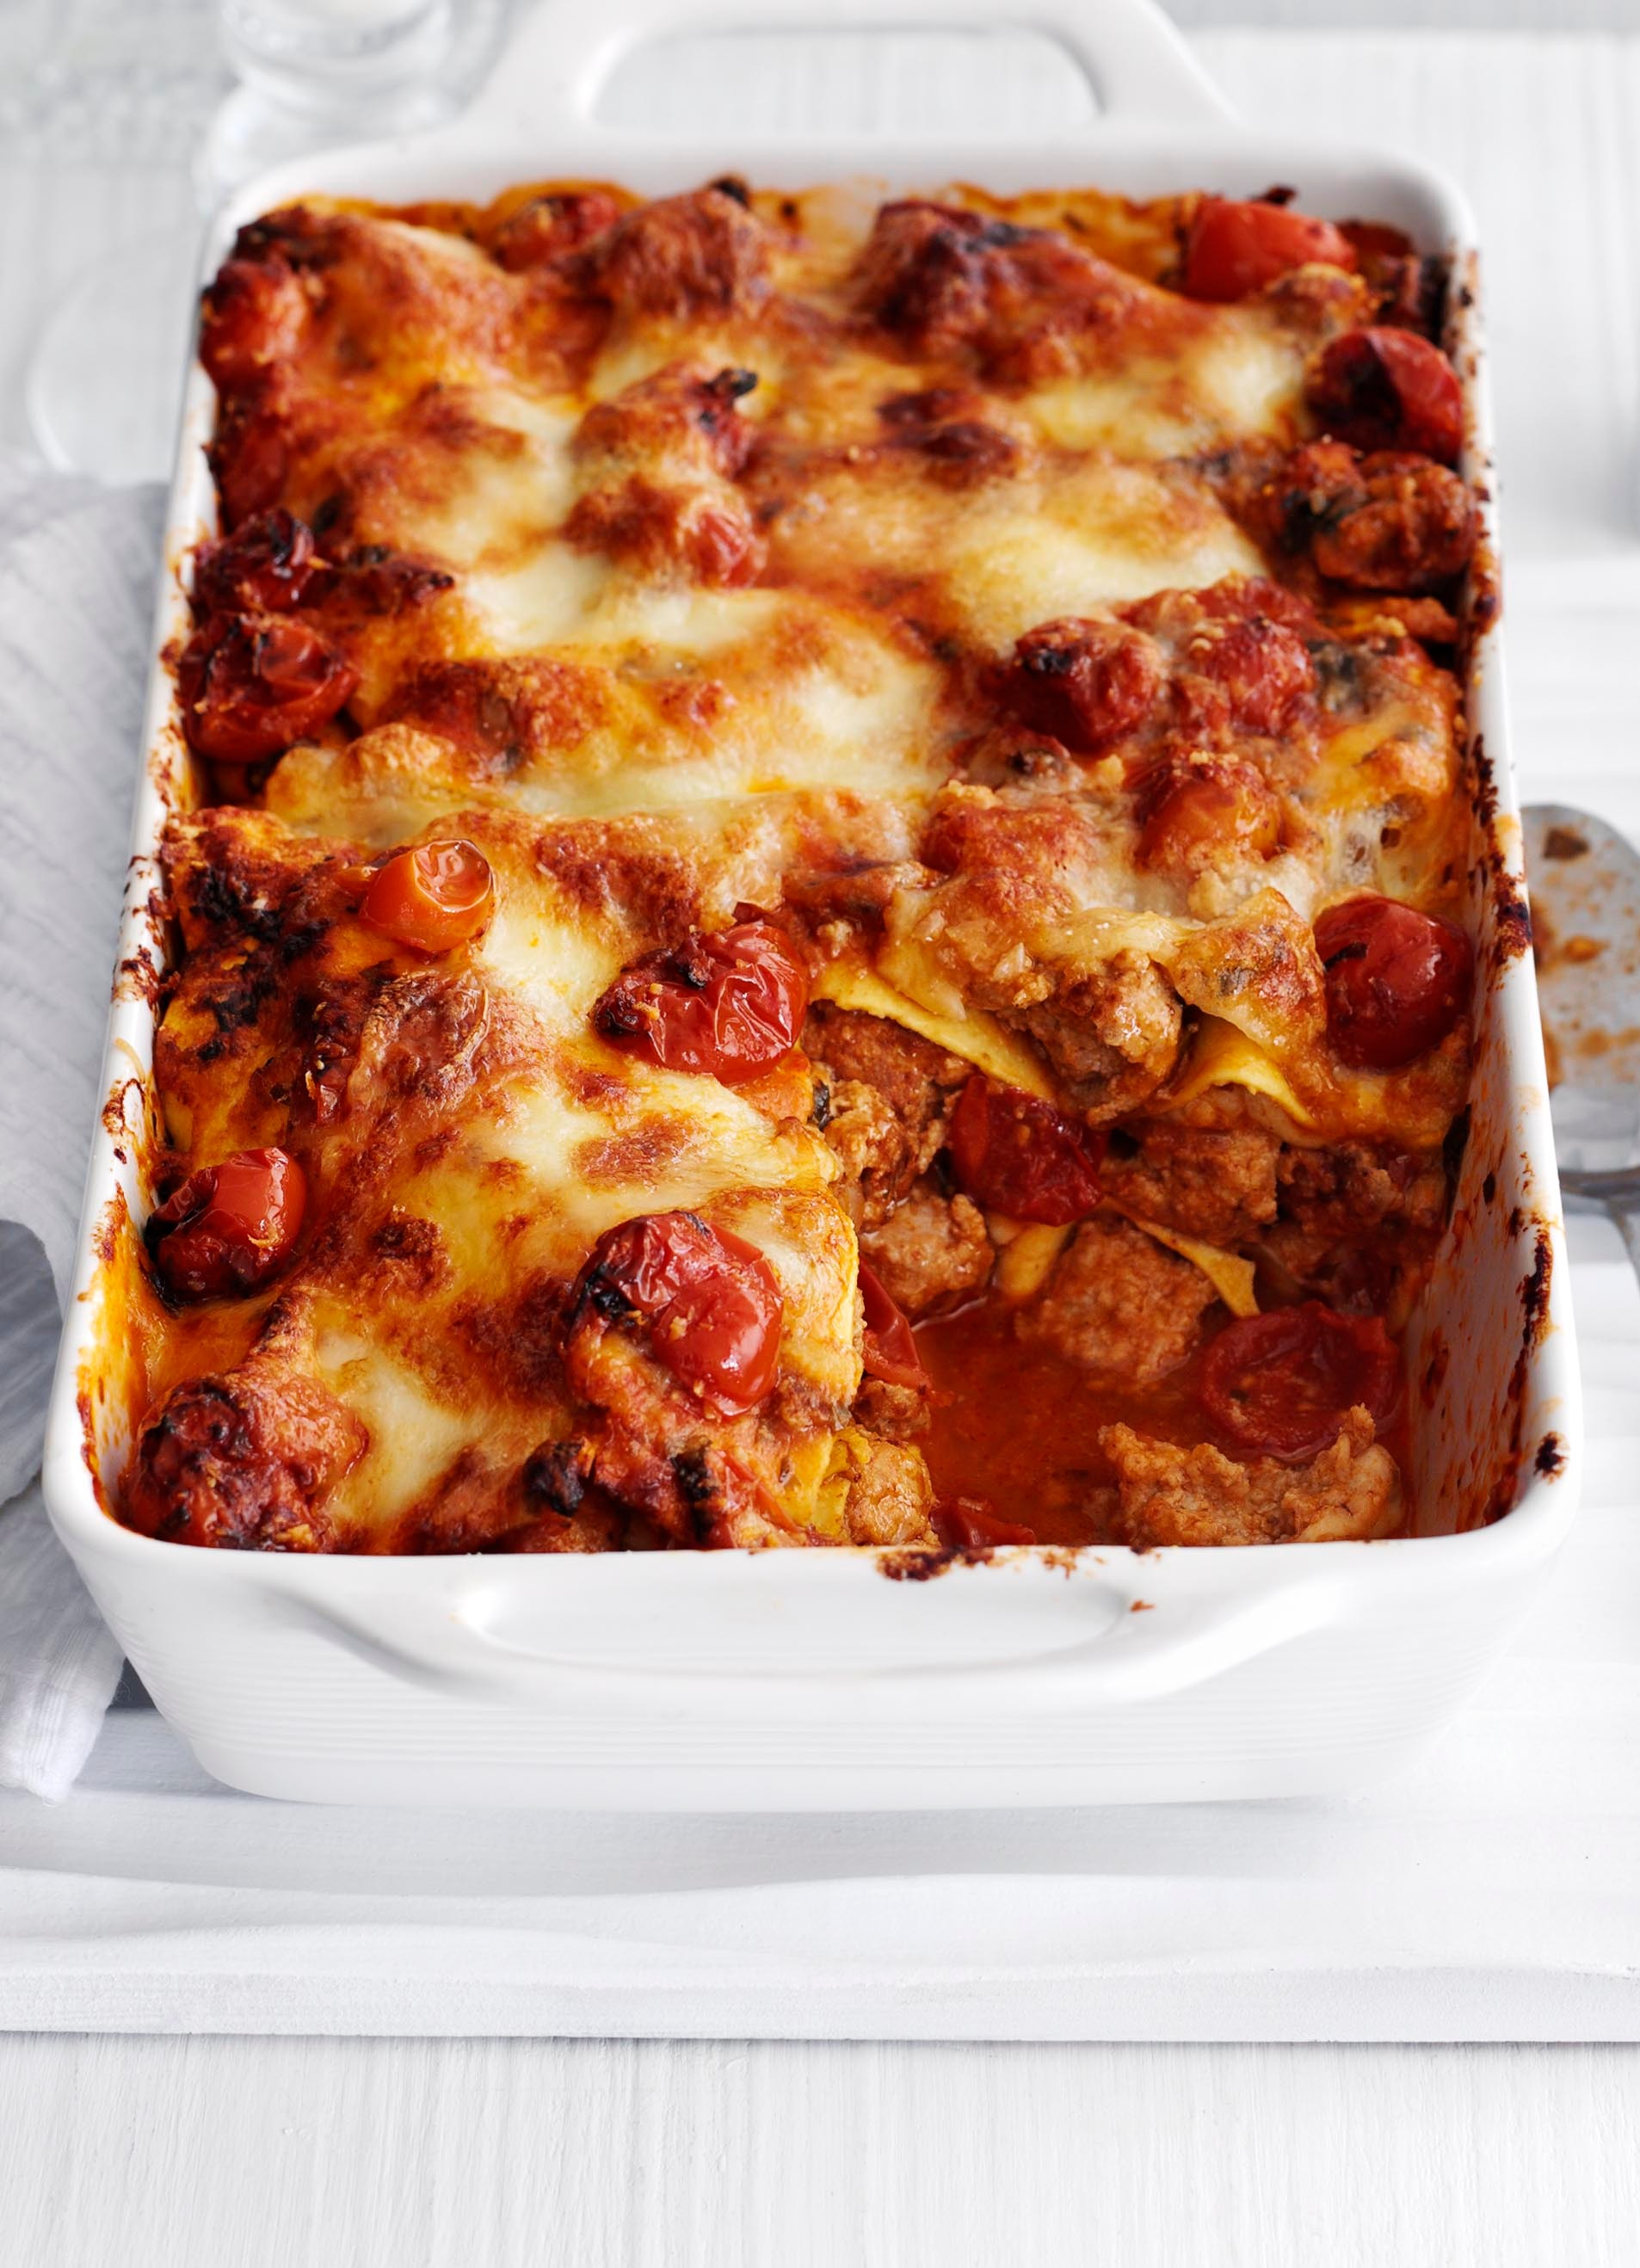 Best Lasagne Recipes and Easy Lasagna Recipe